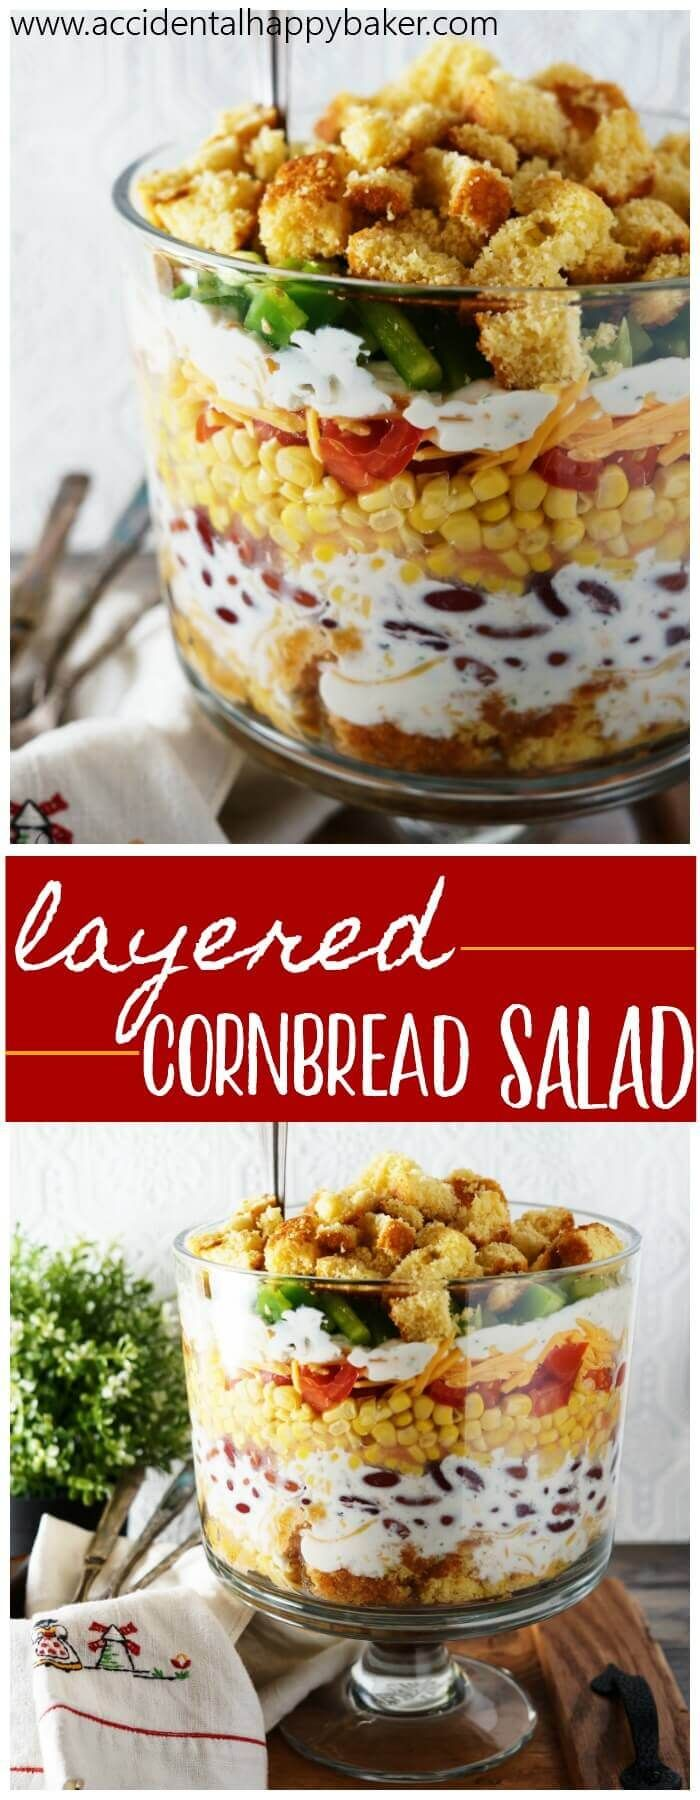 Fresh veggies are layered high with cornbread, cheese and ranch dressing. It's crunchy, creamy, savory, and with the cornbread, just a hint of sweet as well for a combination that can't be beat.